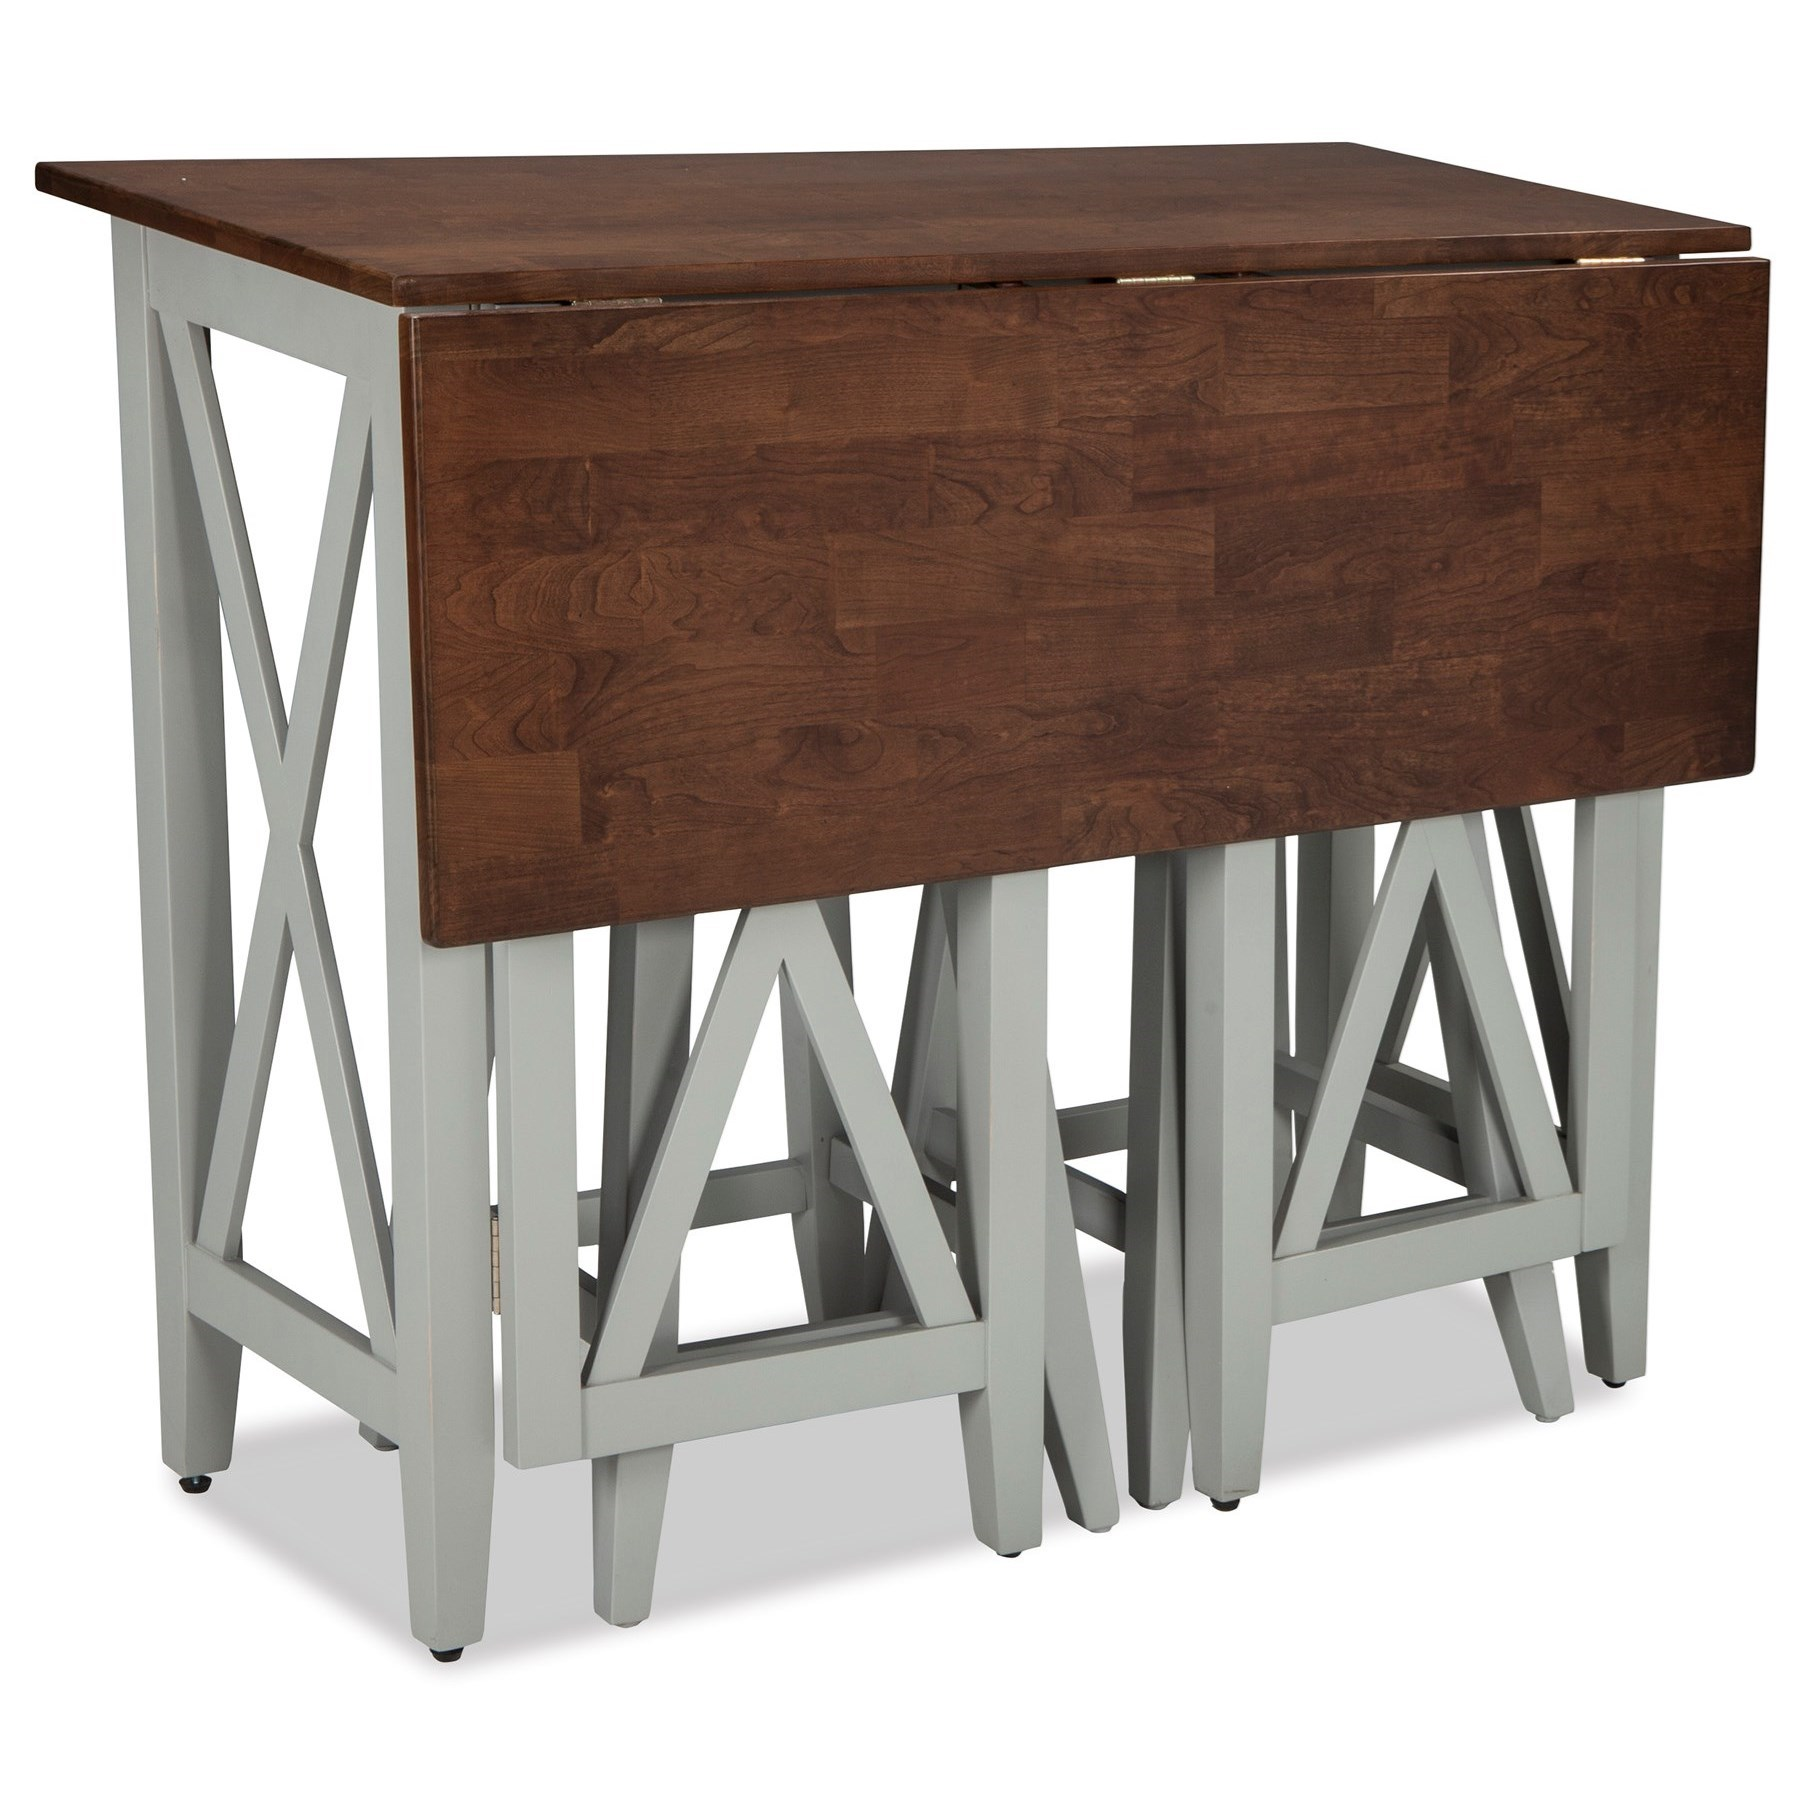 Intercon small space 3 piece drop leaf breakfast bar and for Small table and stool set